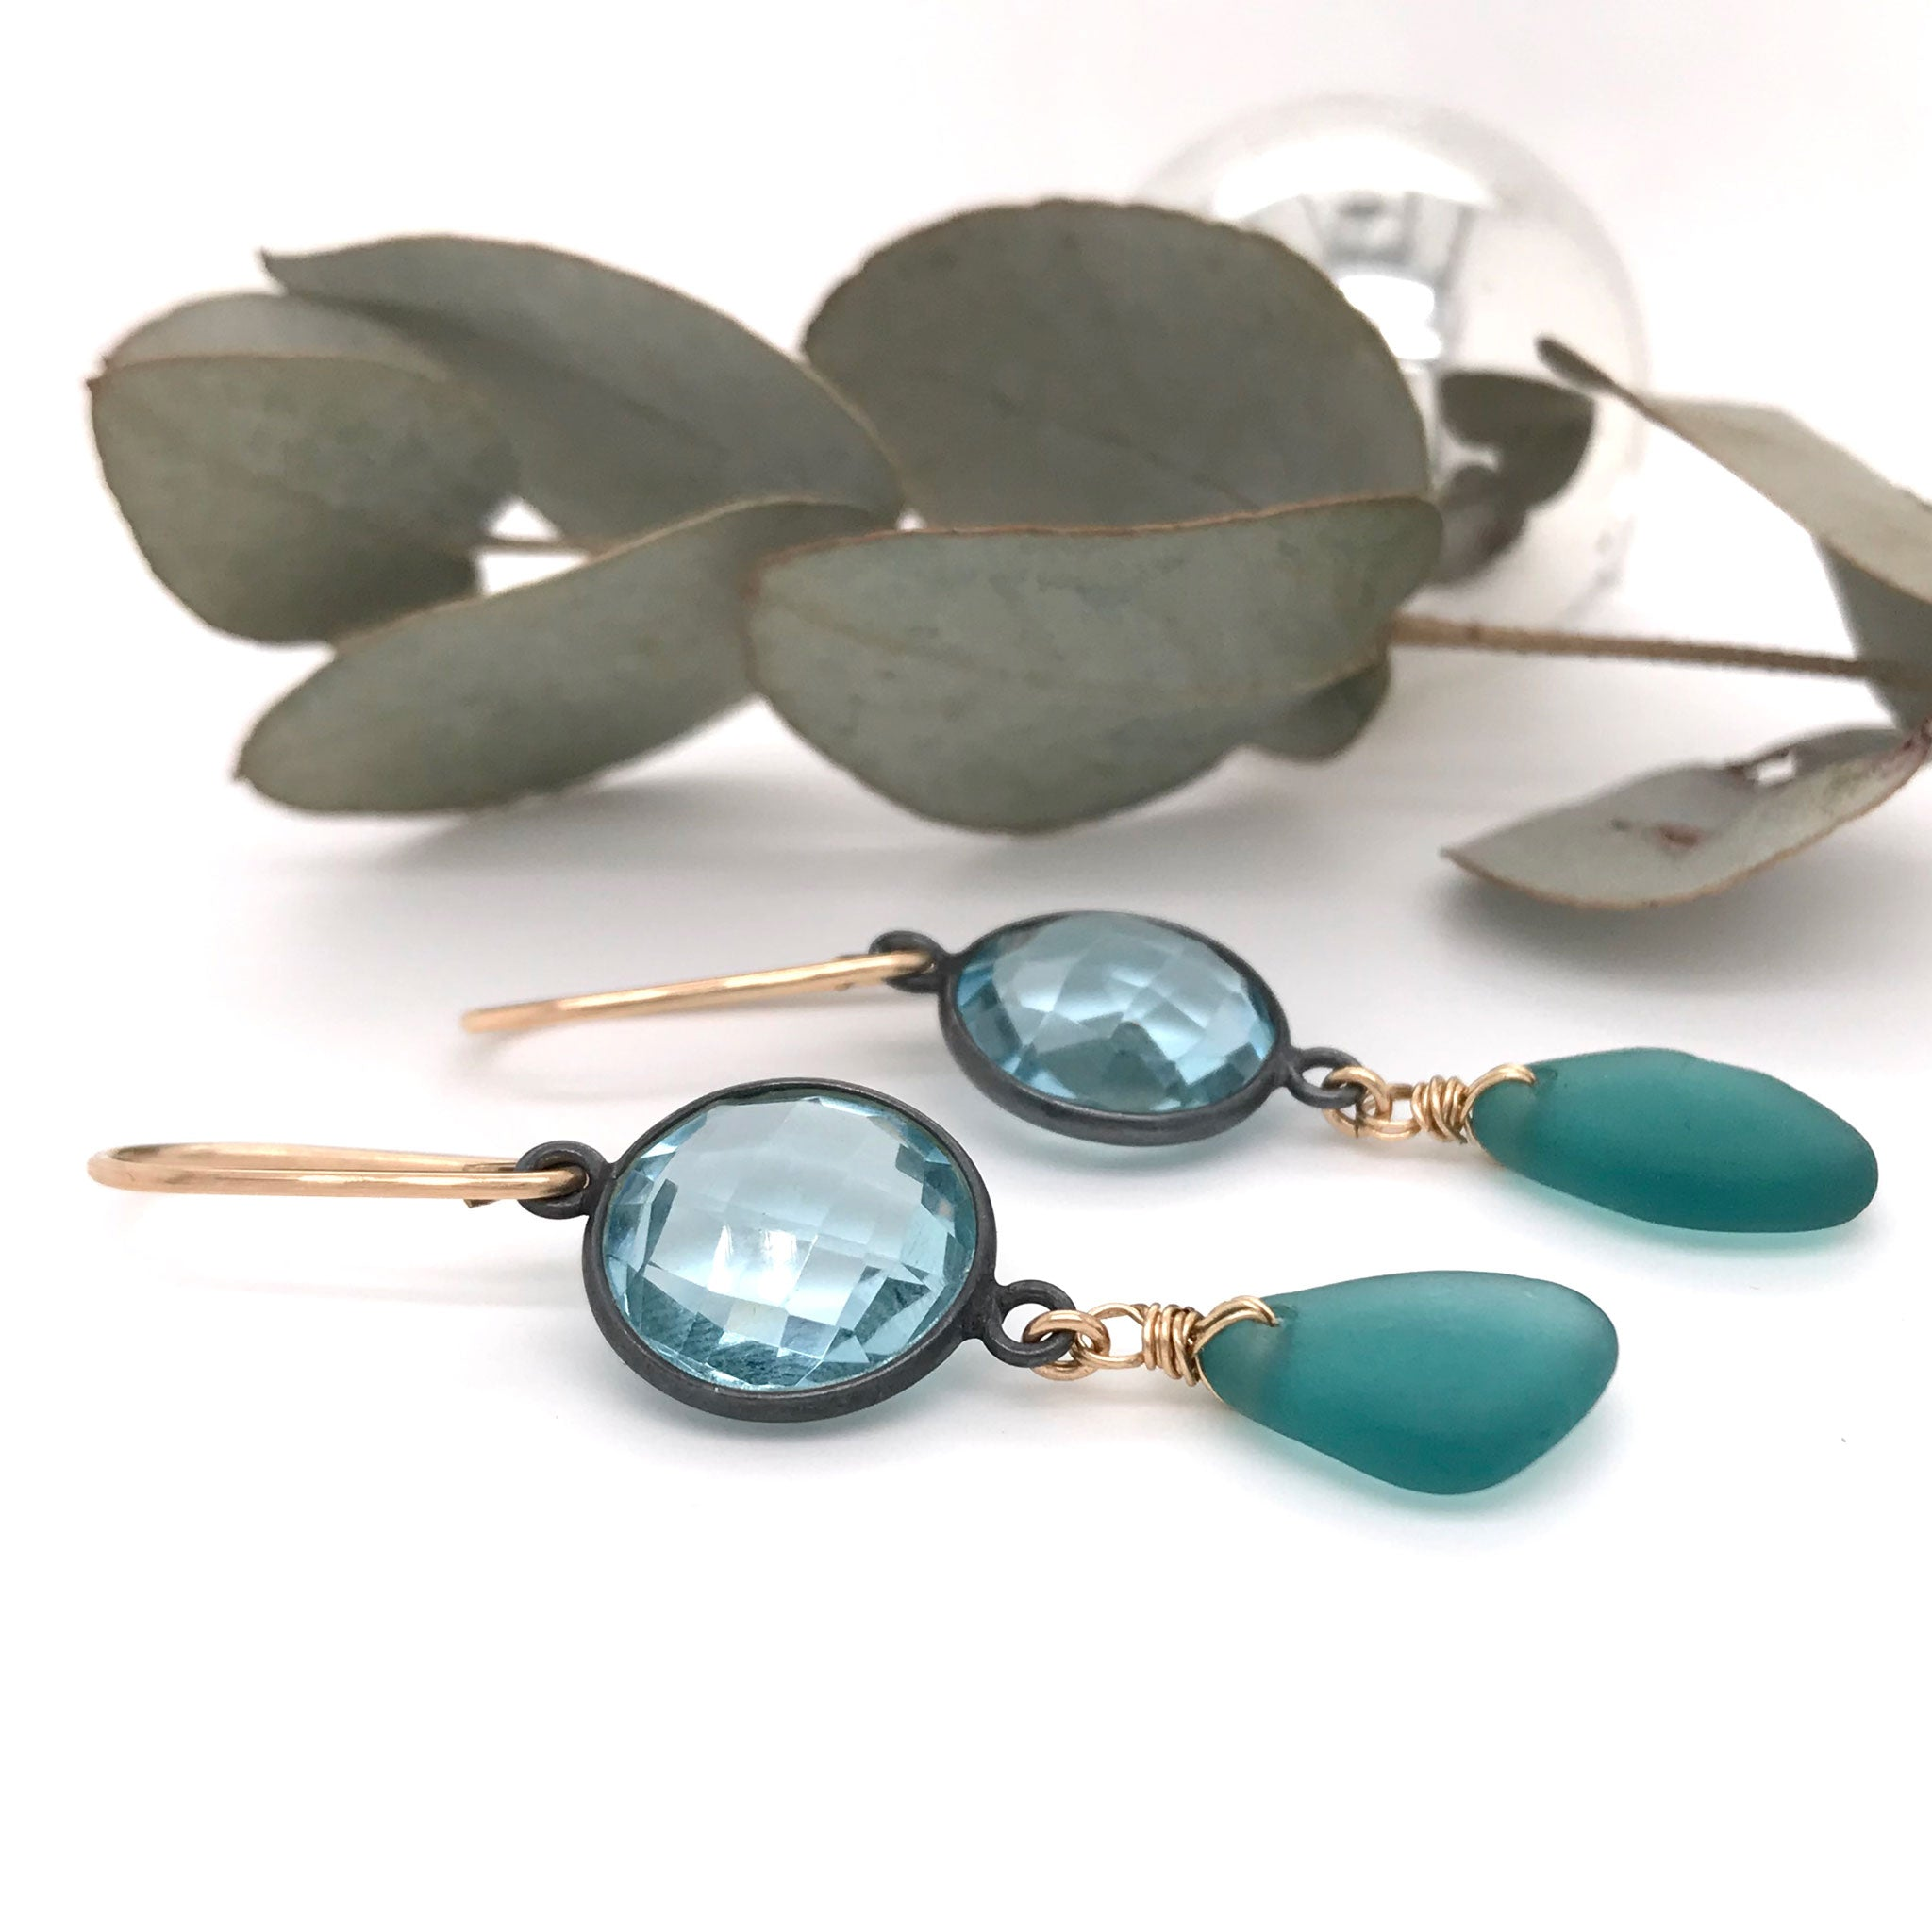 teal seaglass and blue quartz earrings opulent range Kriket Broadhurst jewellery